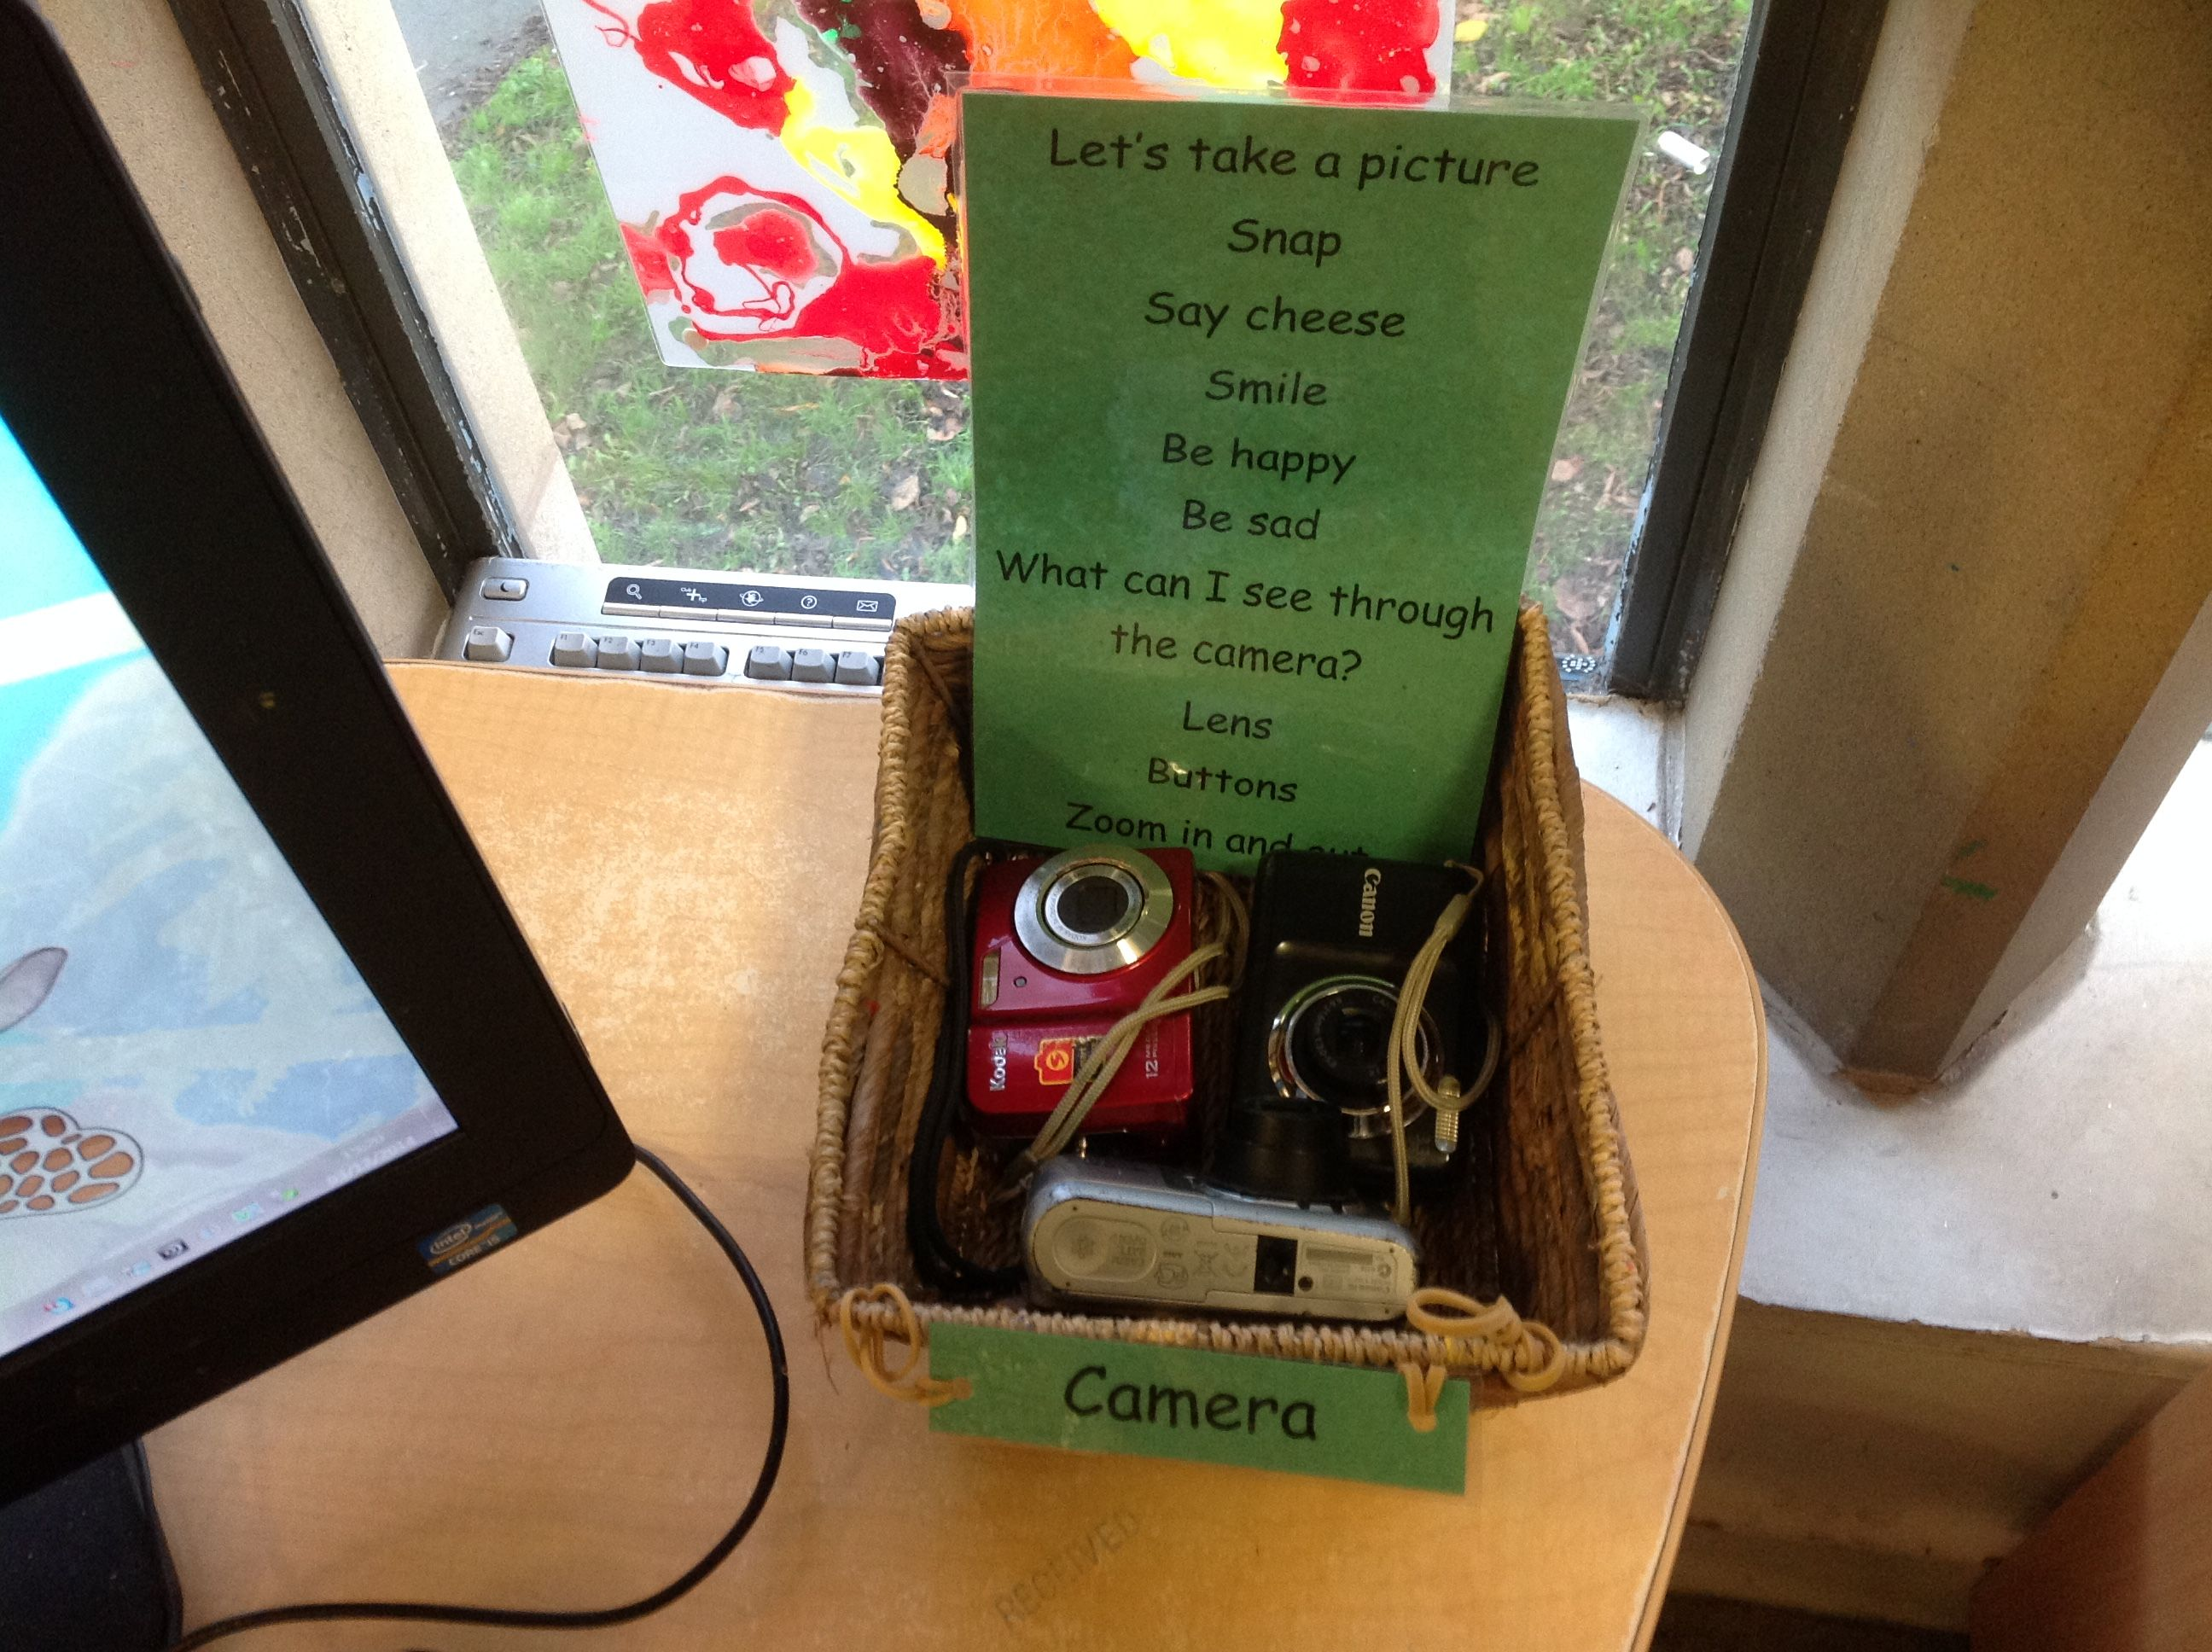 Inviting preschool children to use the cameras at KU St Marys ...